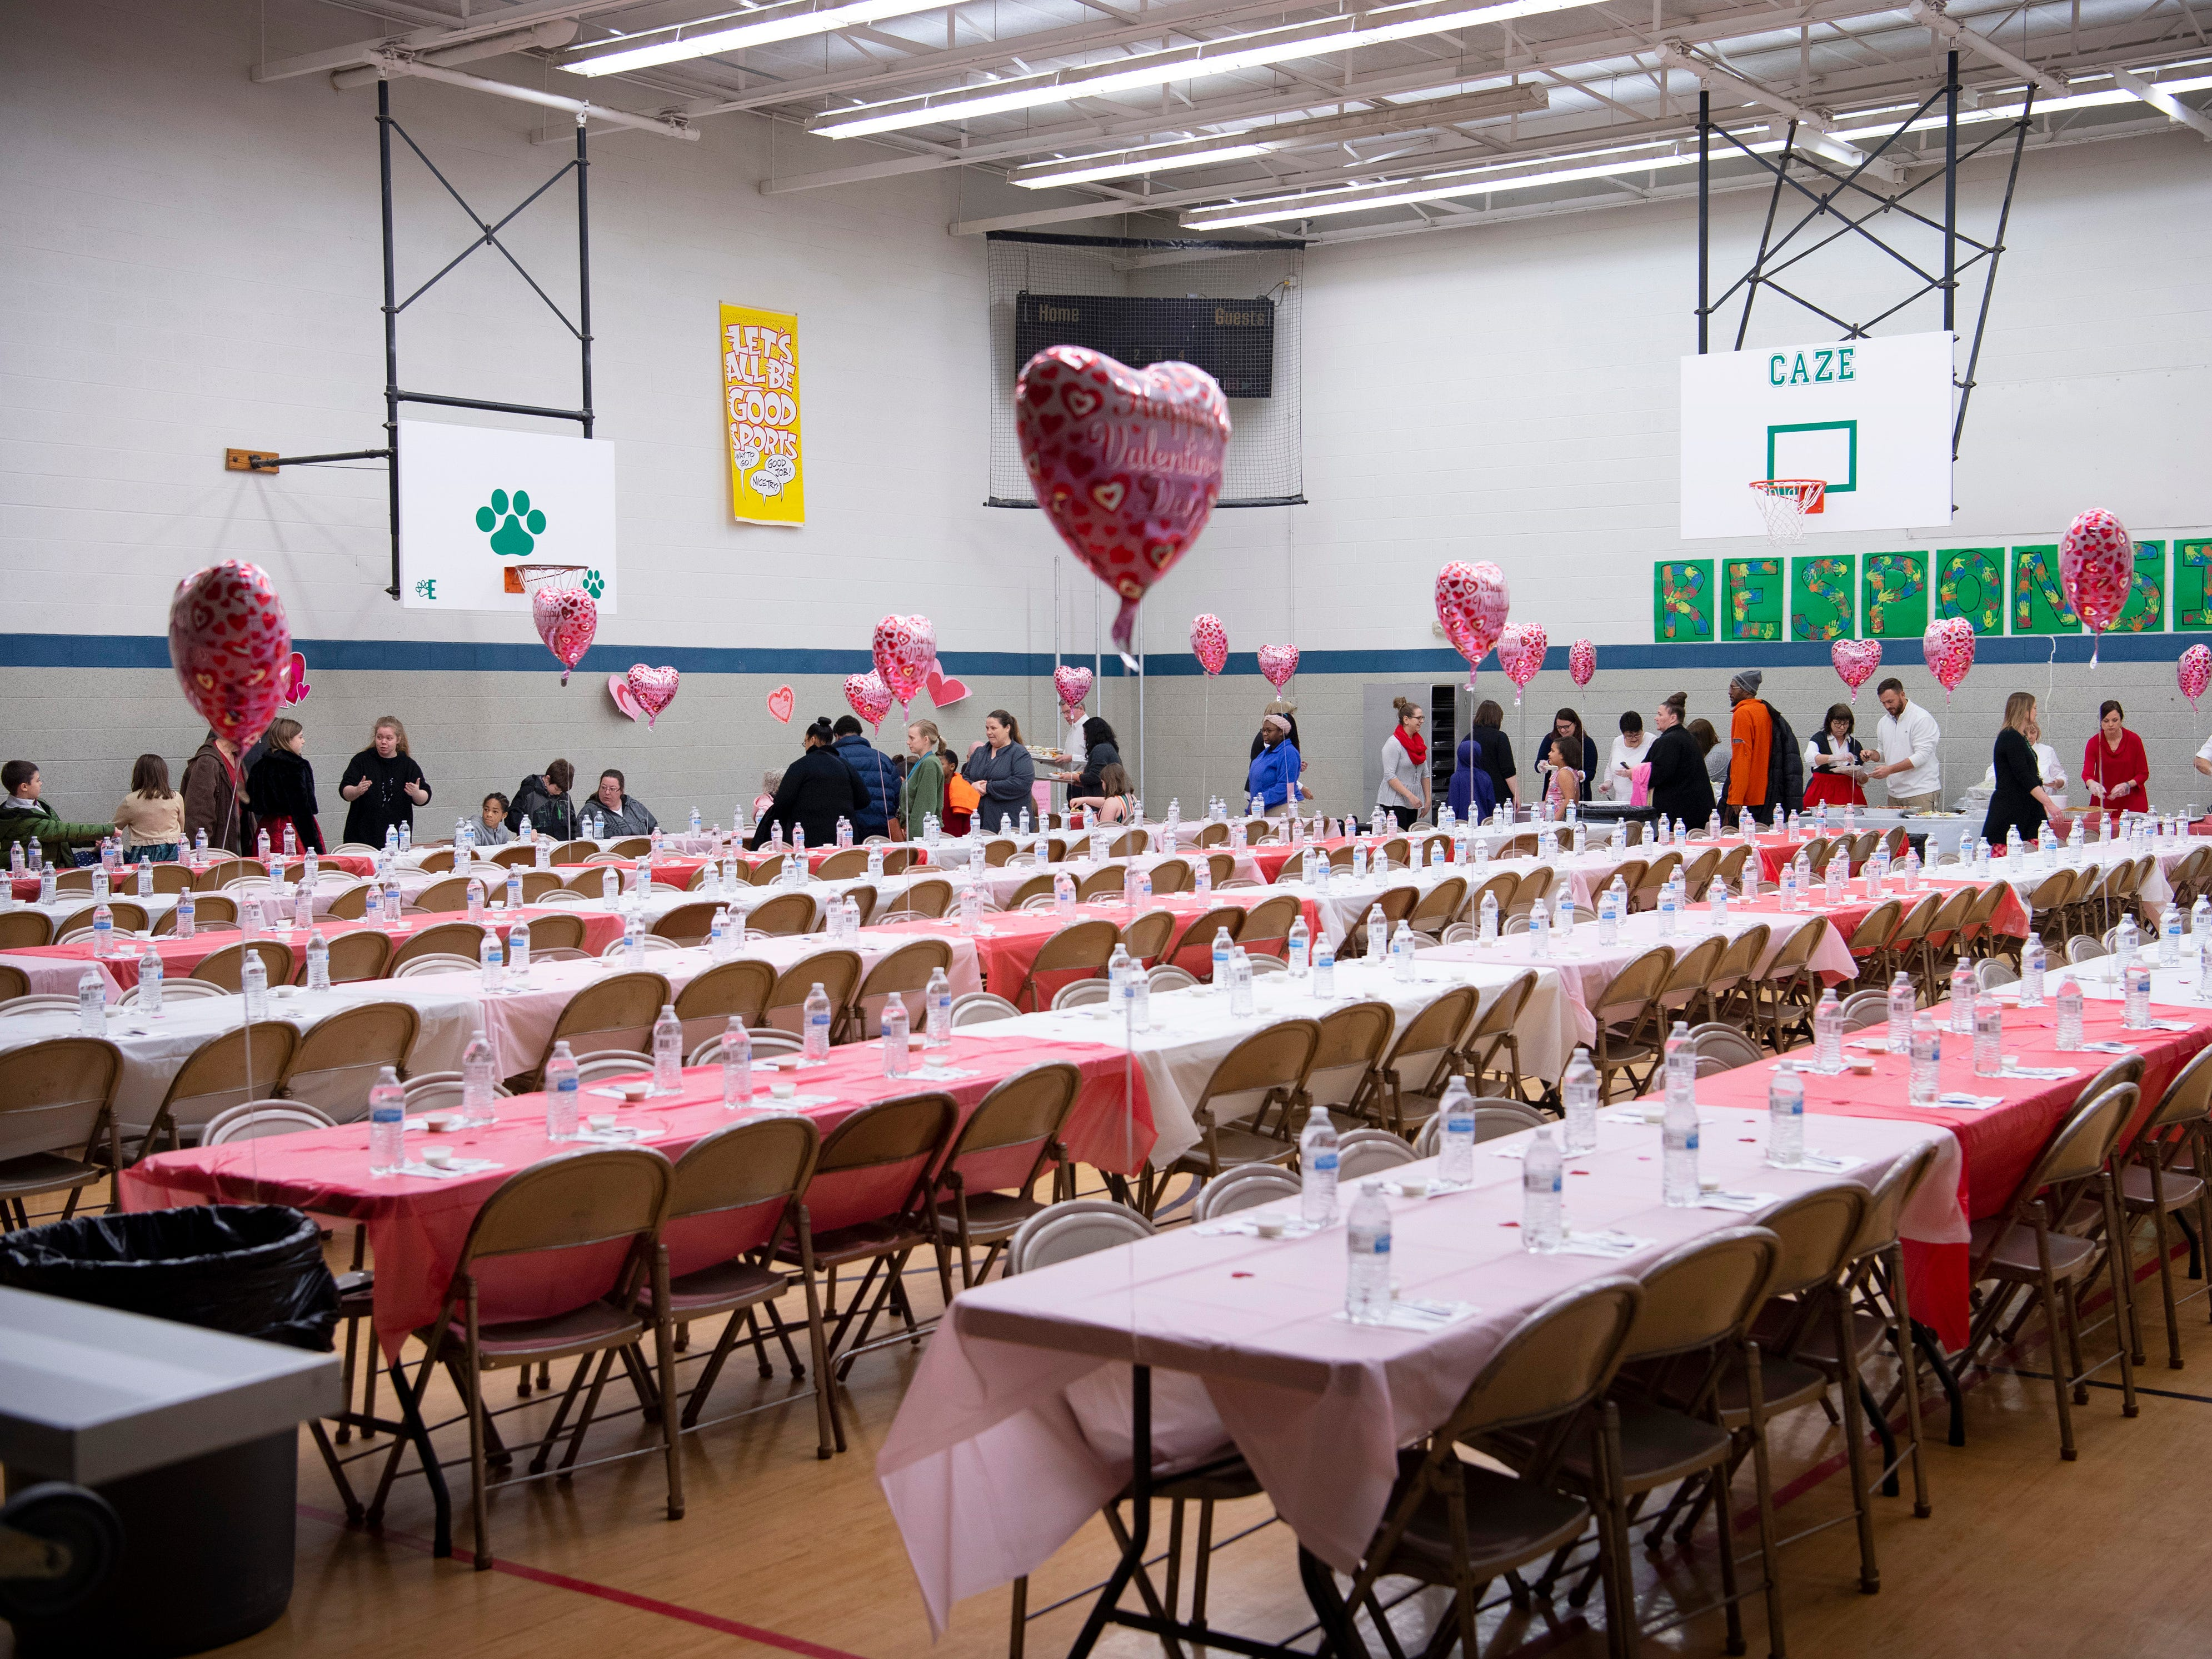 Attendees begin to file in to the Sweetheart Dance at Caze Elementary School Tuesday night. The night started with a dinner of pasta, salad and cupcakes and moved quickly into Valentine's Day crafts and dancing.